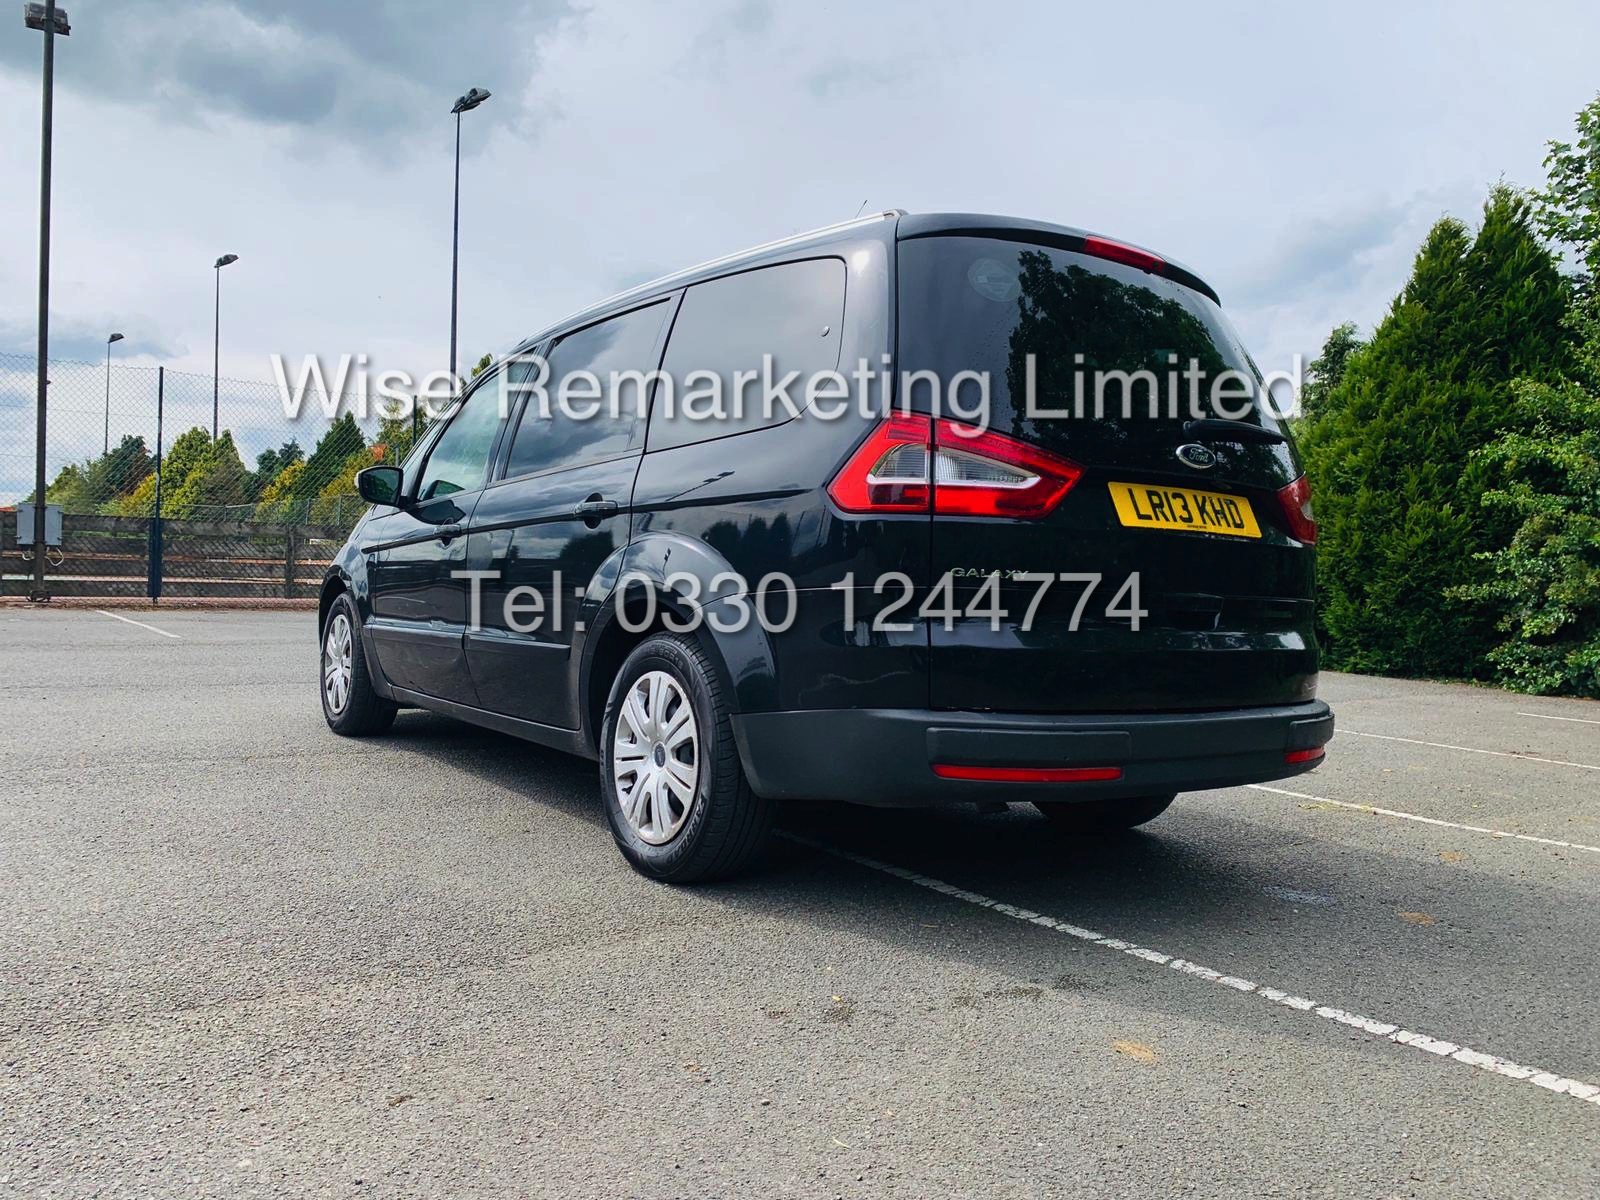 Lot 13 - **RESERVE MET** FORD GALAXY ZETEC 2.0L TDCI 7 SEATER MPV 13 REG / BLACK / PRIVACY GLASS